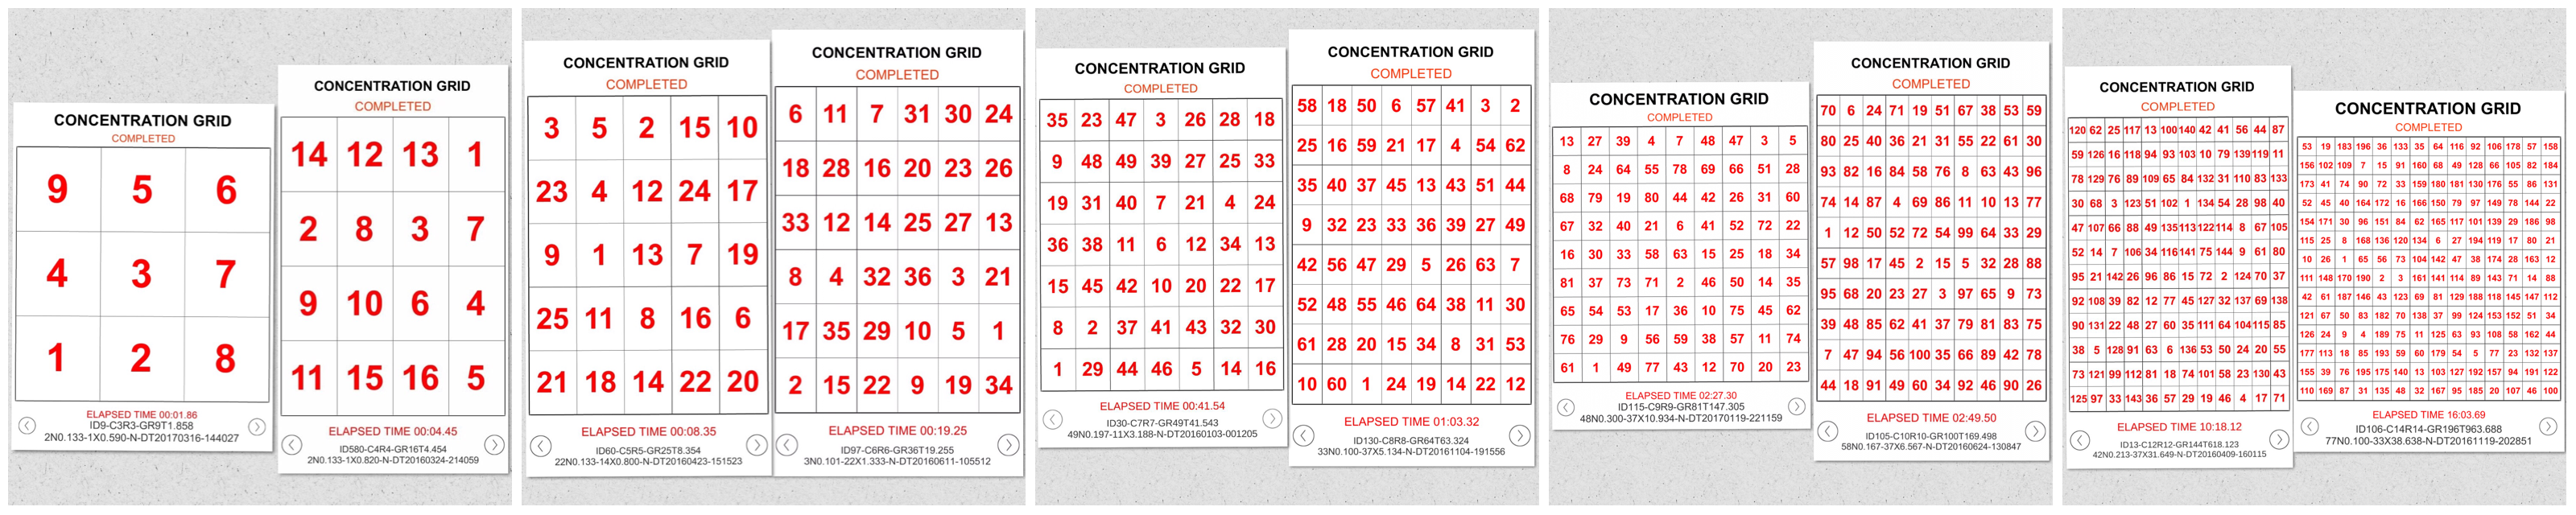 Concentration Grid is a mental skills training exercise/app for students, athletes, coaches, sports performance/psychology professionals, trainers, teachers, parents, etc. Use concentration grids a/k/a mental focus grids with student-athletes as a tool for assessment, practice and development of focus/attention skills ... and for competitive challenge and fun. Make self-development a daily habit. #challengeyourself #concentrationgrid - www.concentrationgrid.com - www.mentalfocusgrids.com - www.tryconcentrationgrid.com